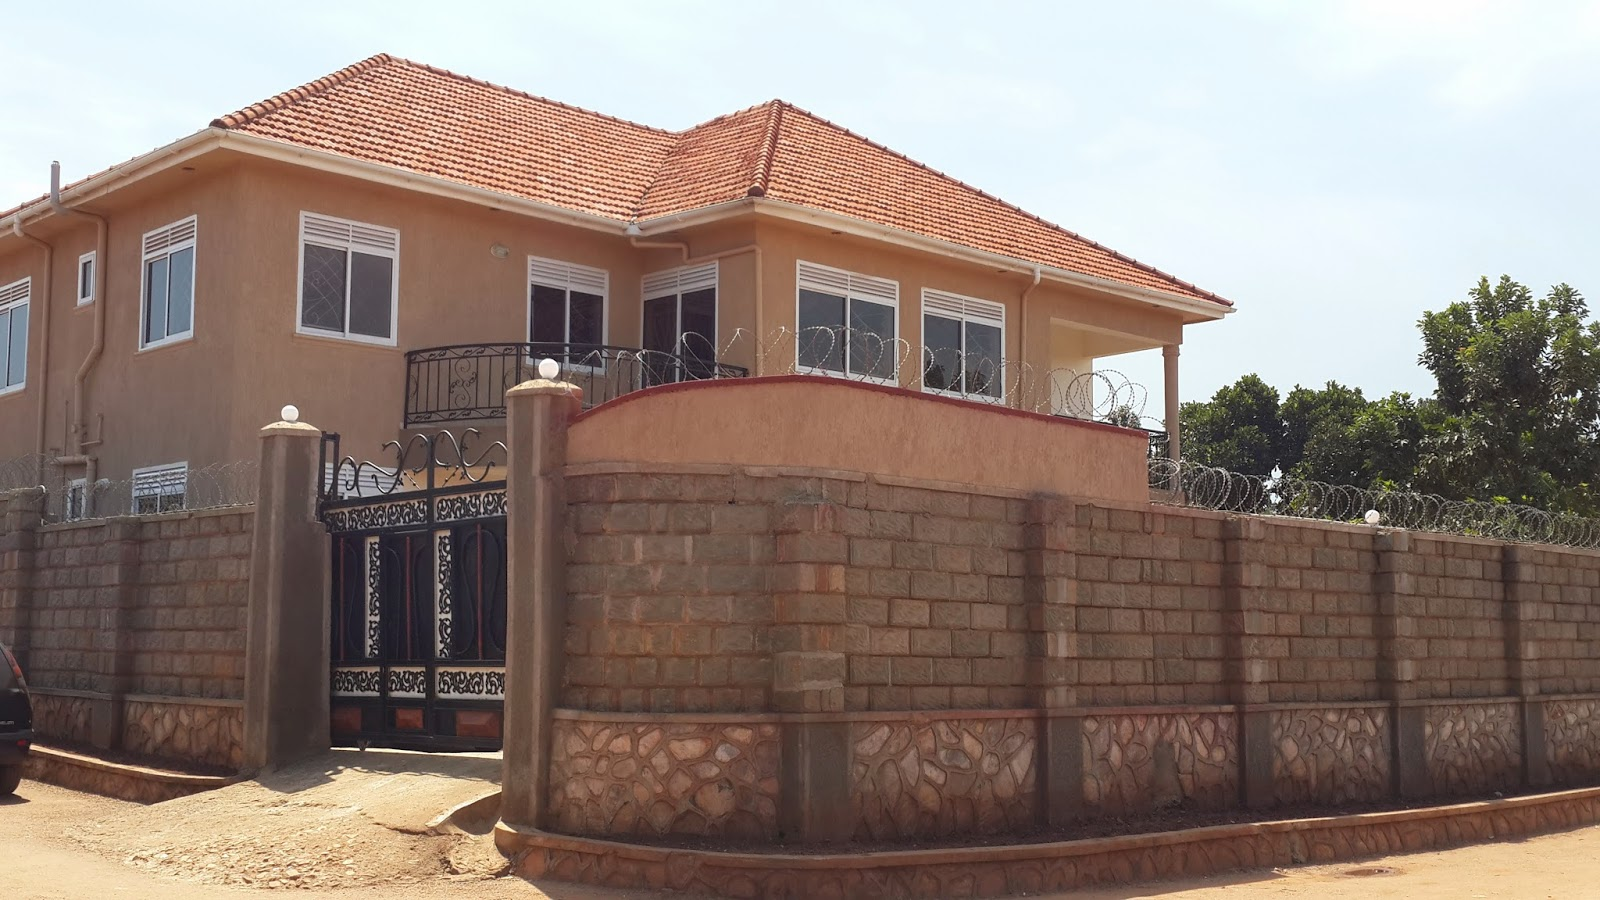 houses for sale kampala  uganda  house for sale bunga kampala  ugnada